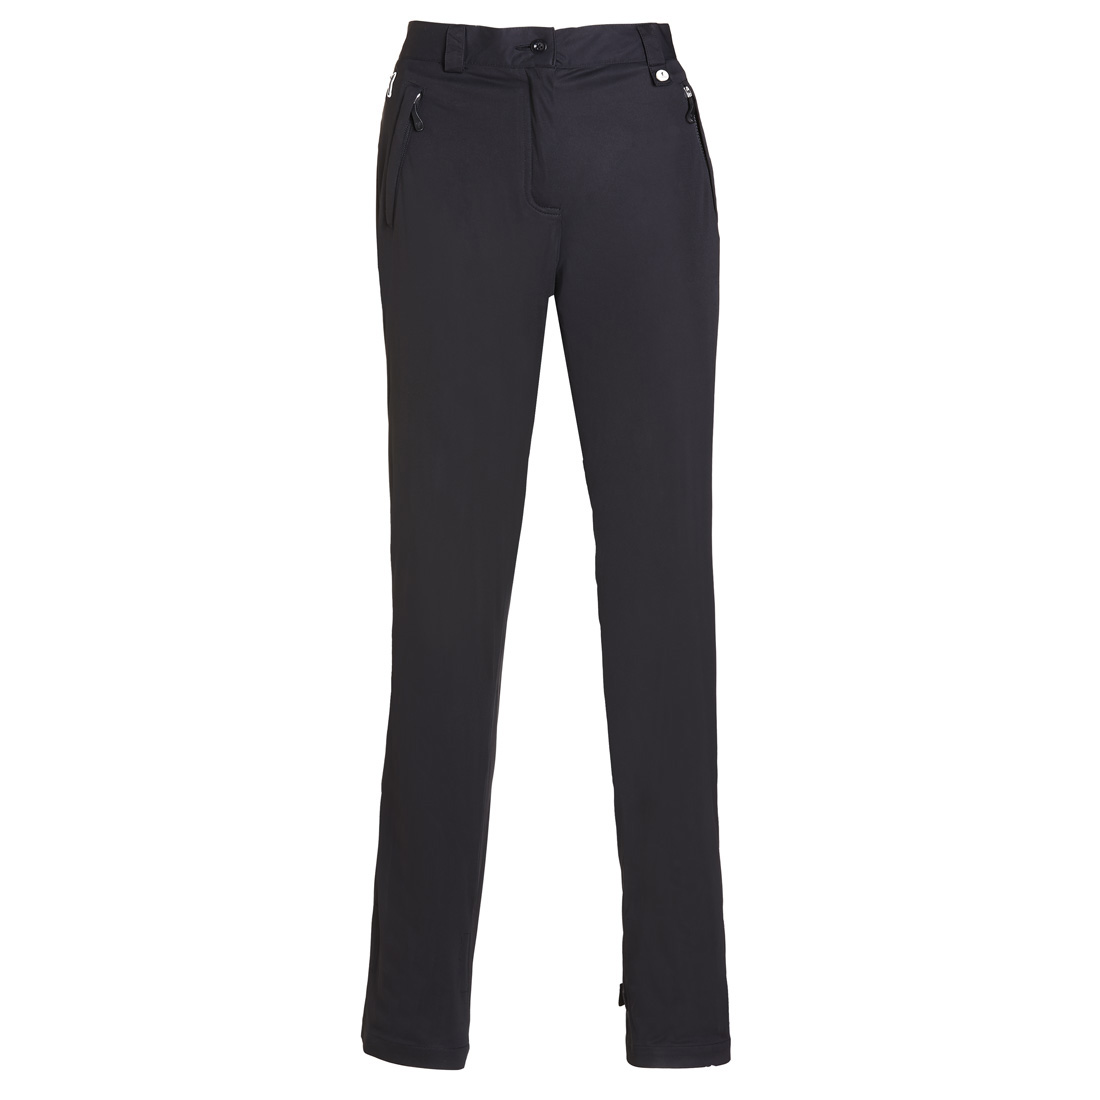 Waterproof stretch trousers Black